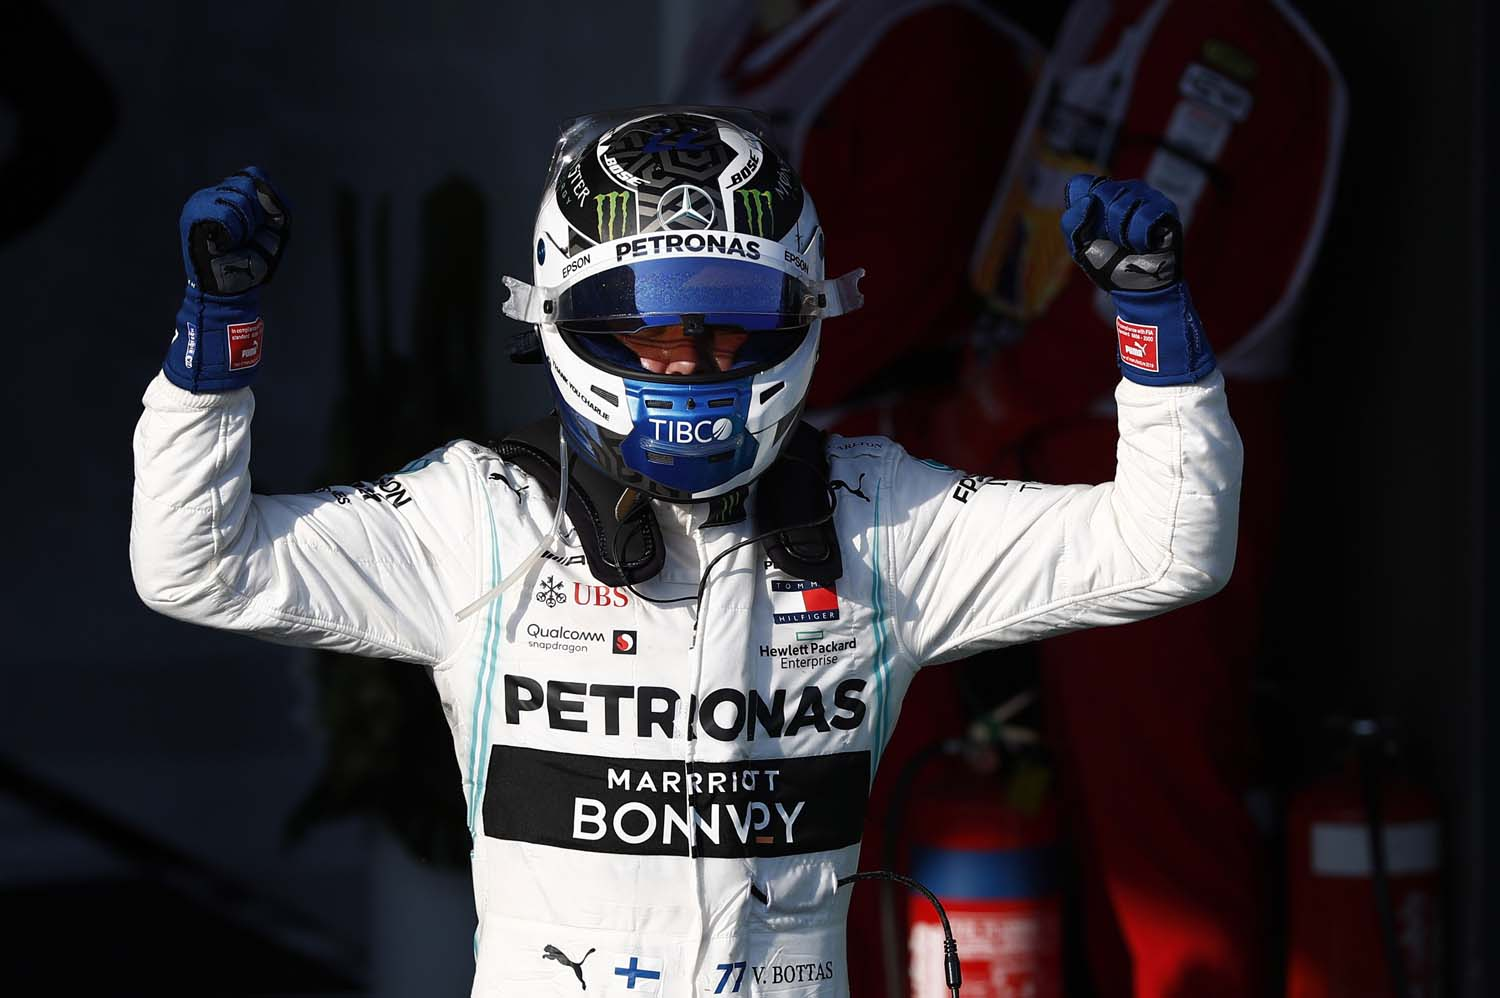 2019 Australian Grand Prix, Sunday - LAT Images Valtteri Bottas